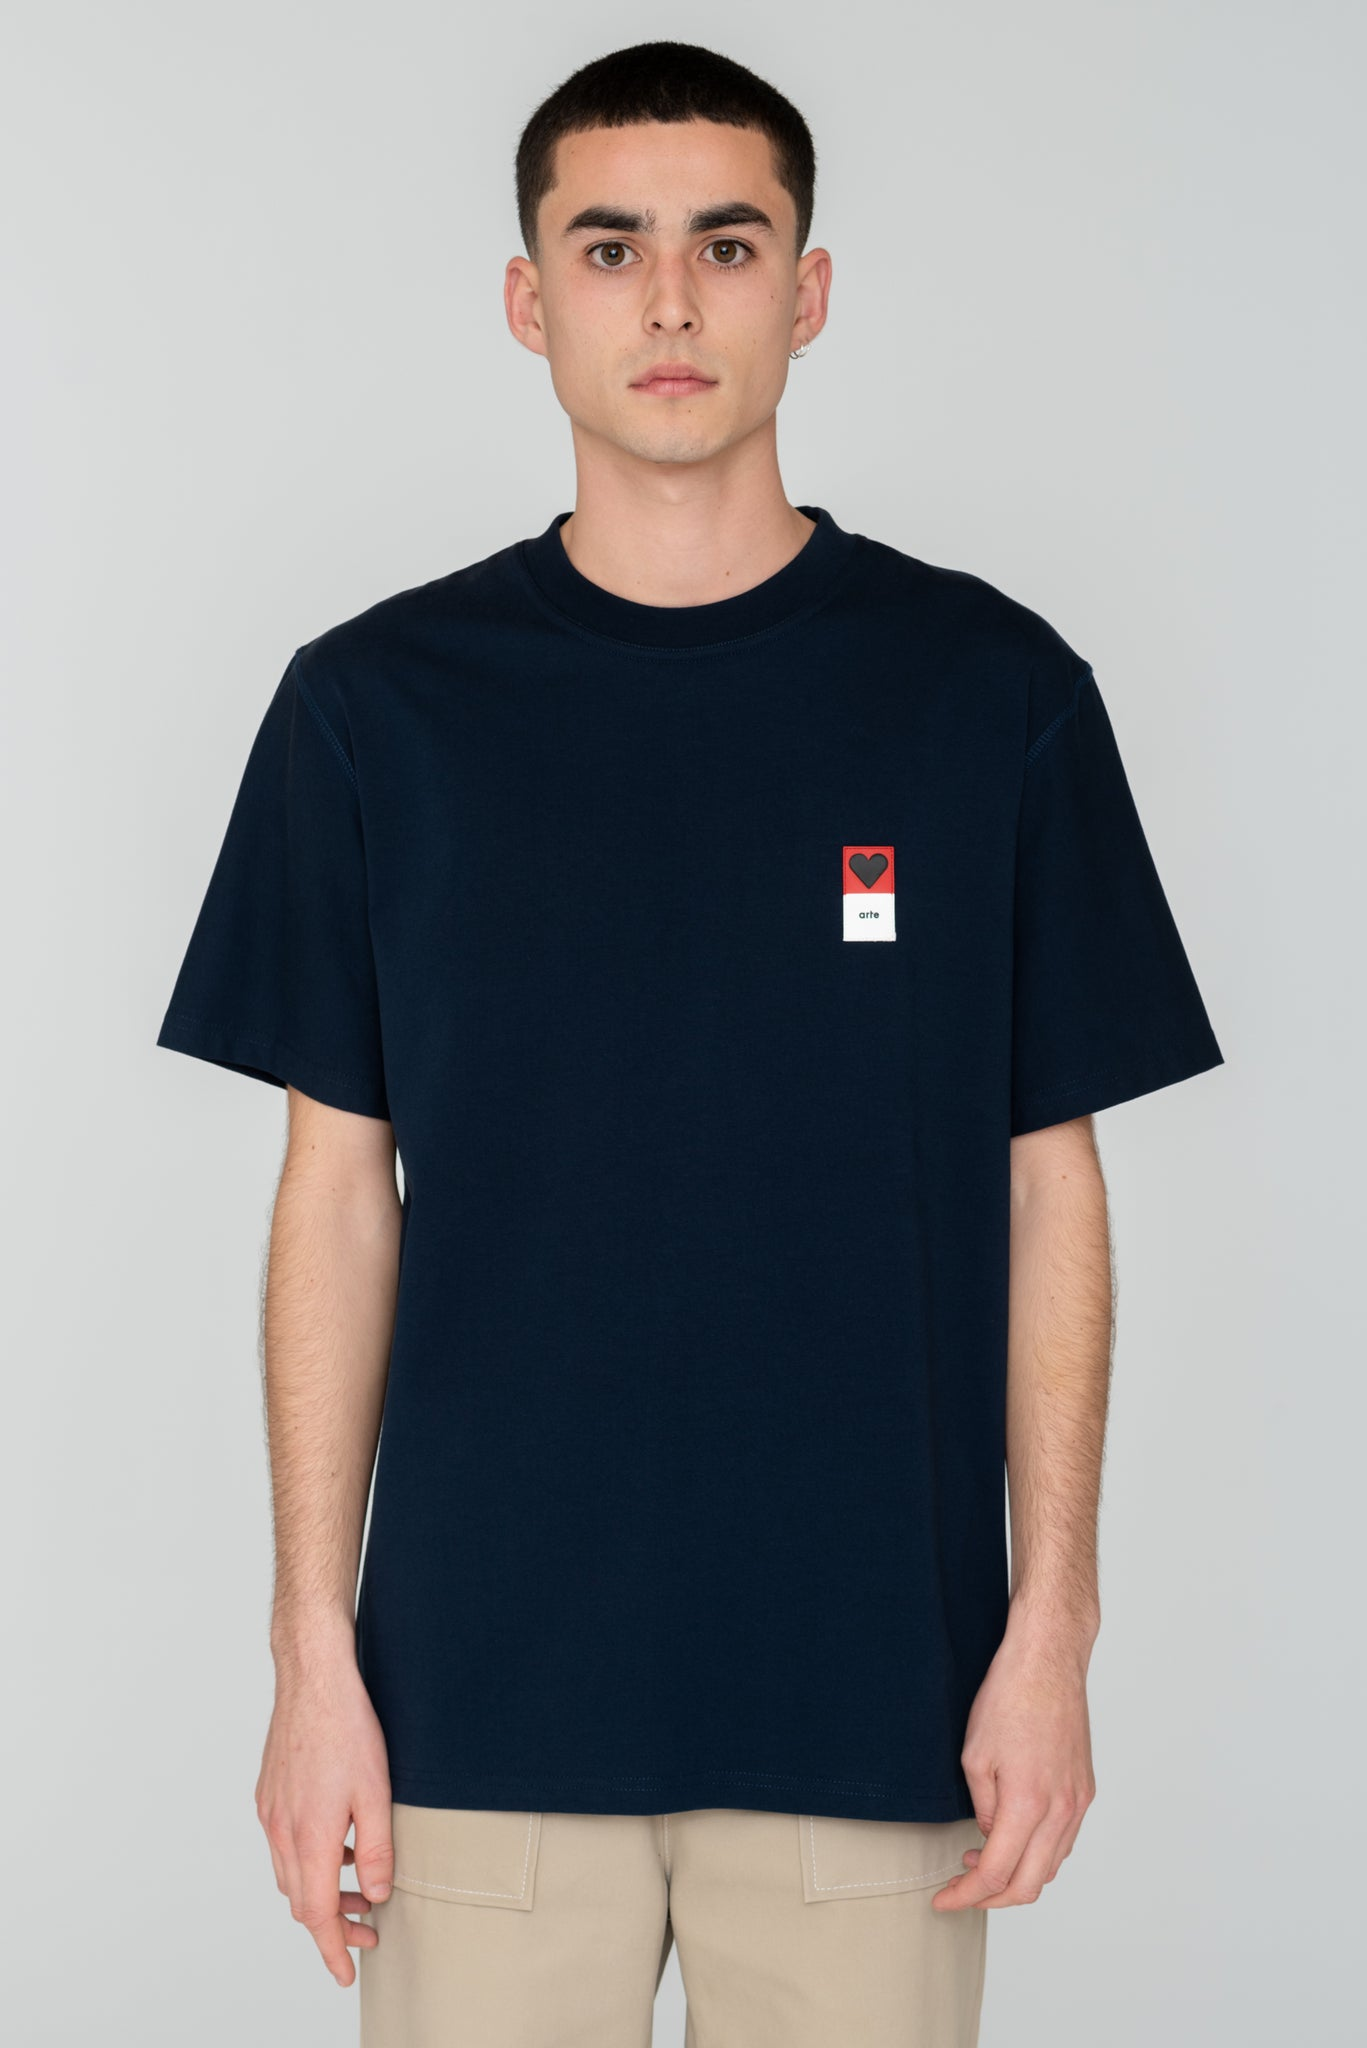 Troy Heart Patch Navy T-shirt - Arte Antwerp